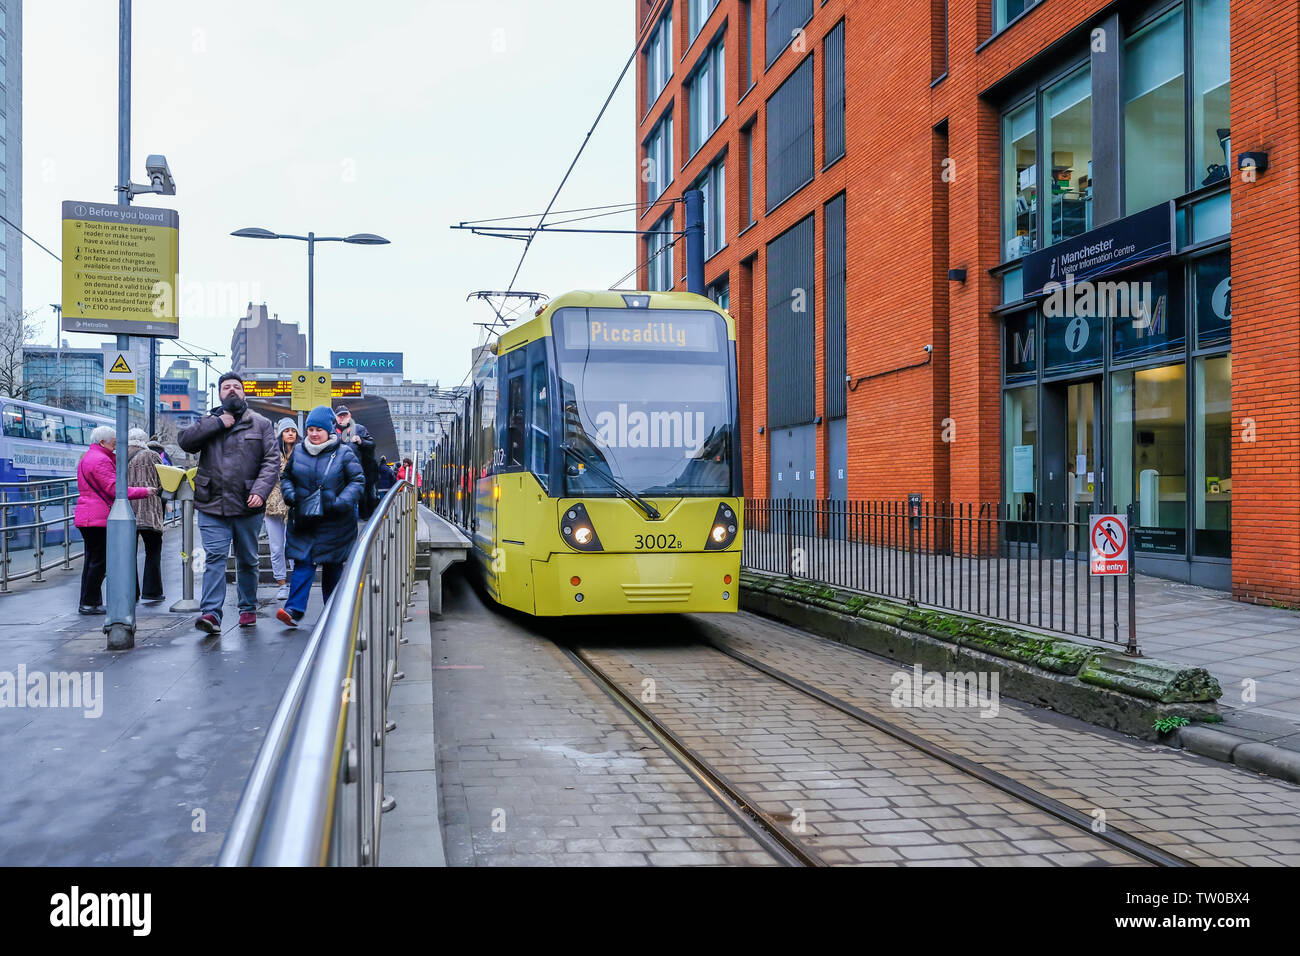 Picadilly, Manchester, UK - January 19, 2019: Yellow tram at the Picadilly stop wiht passengers leaving the station. - Stock Image